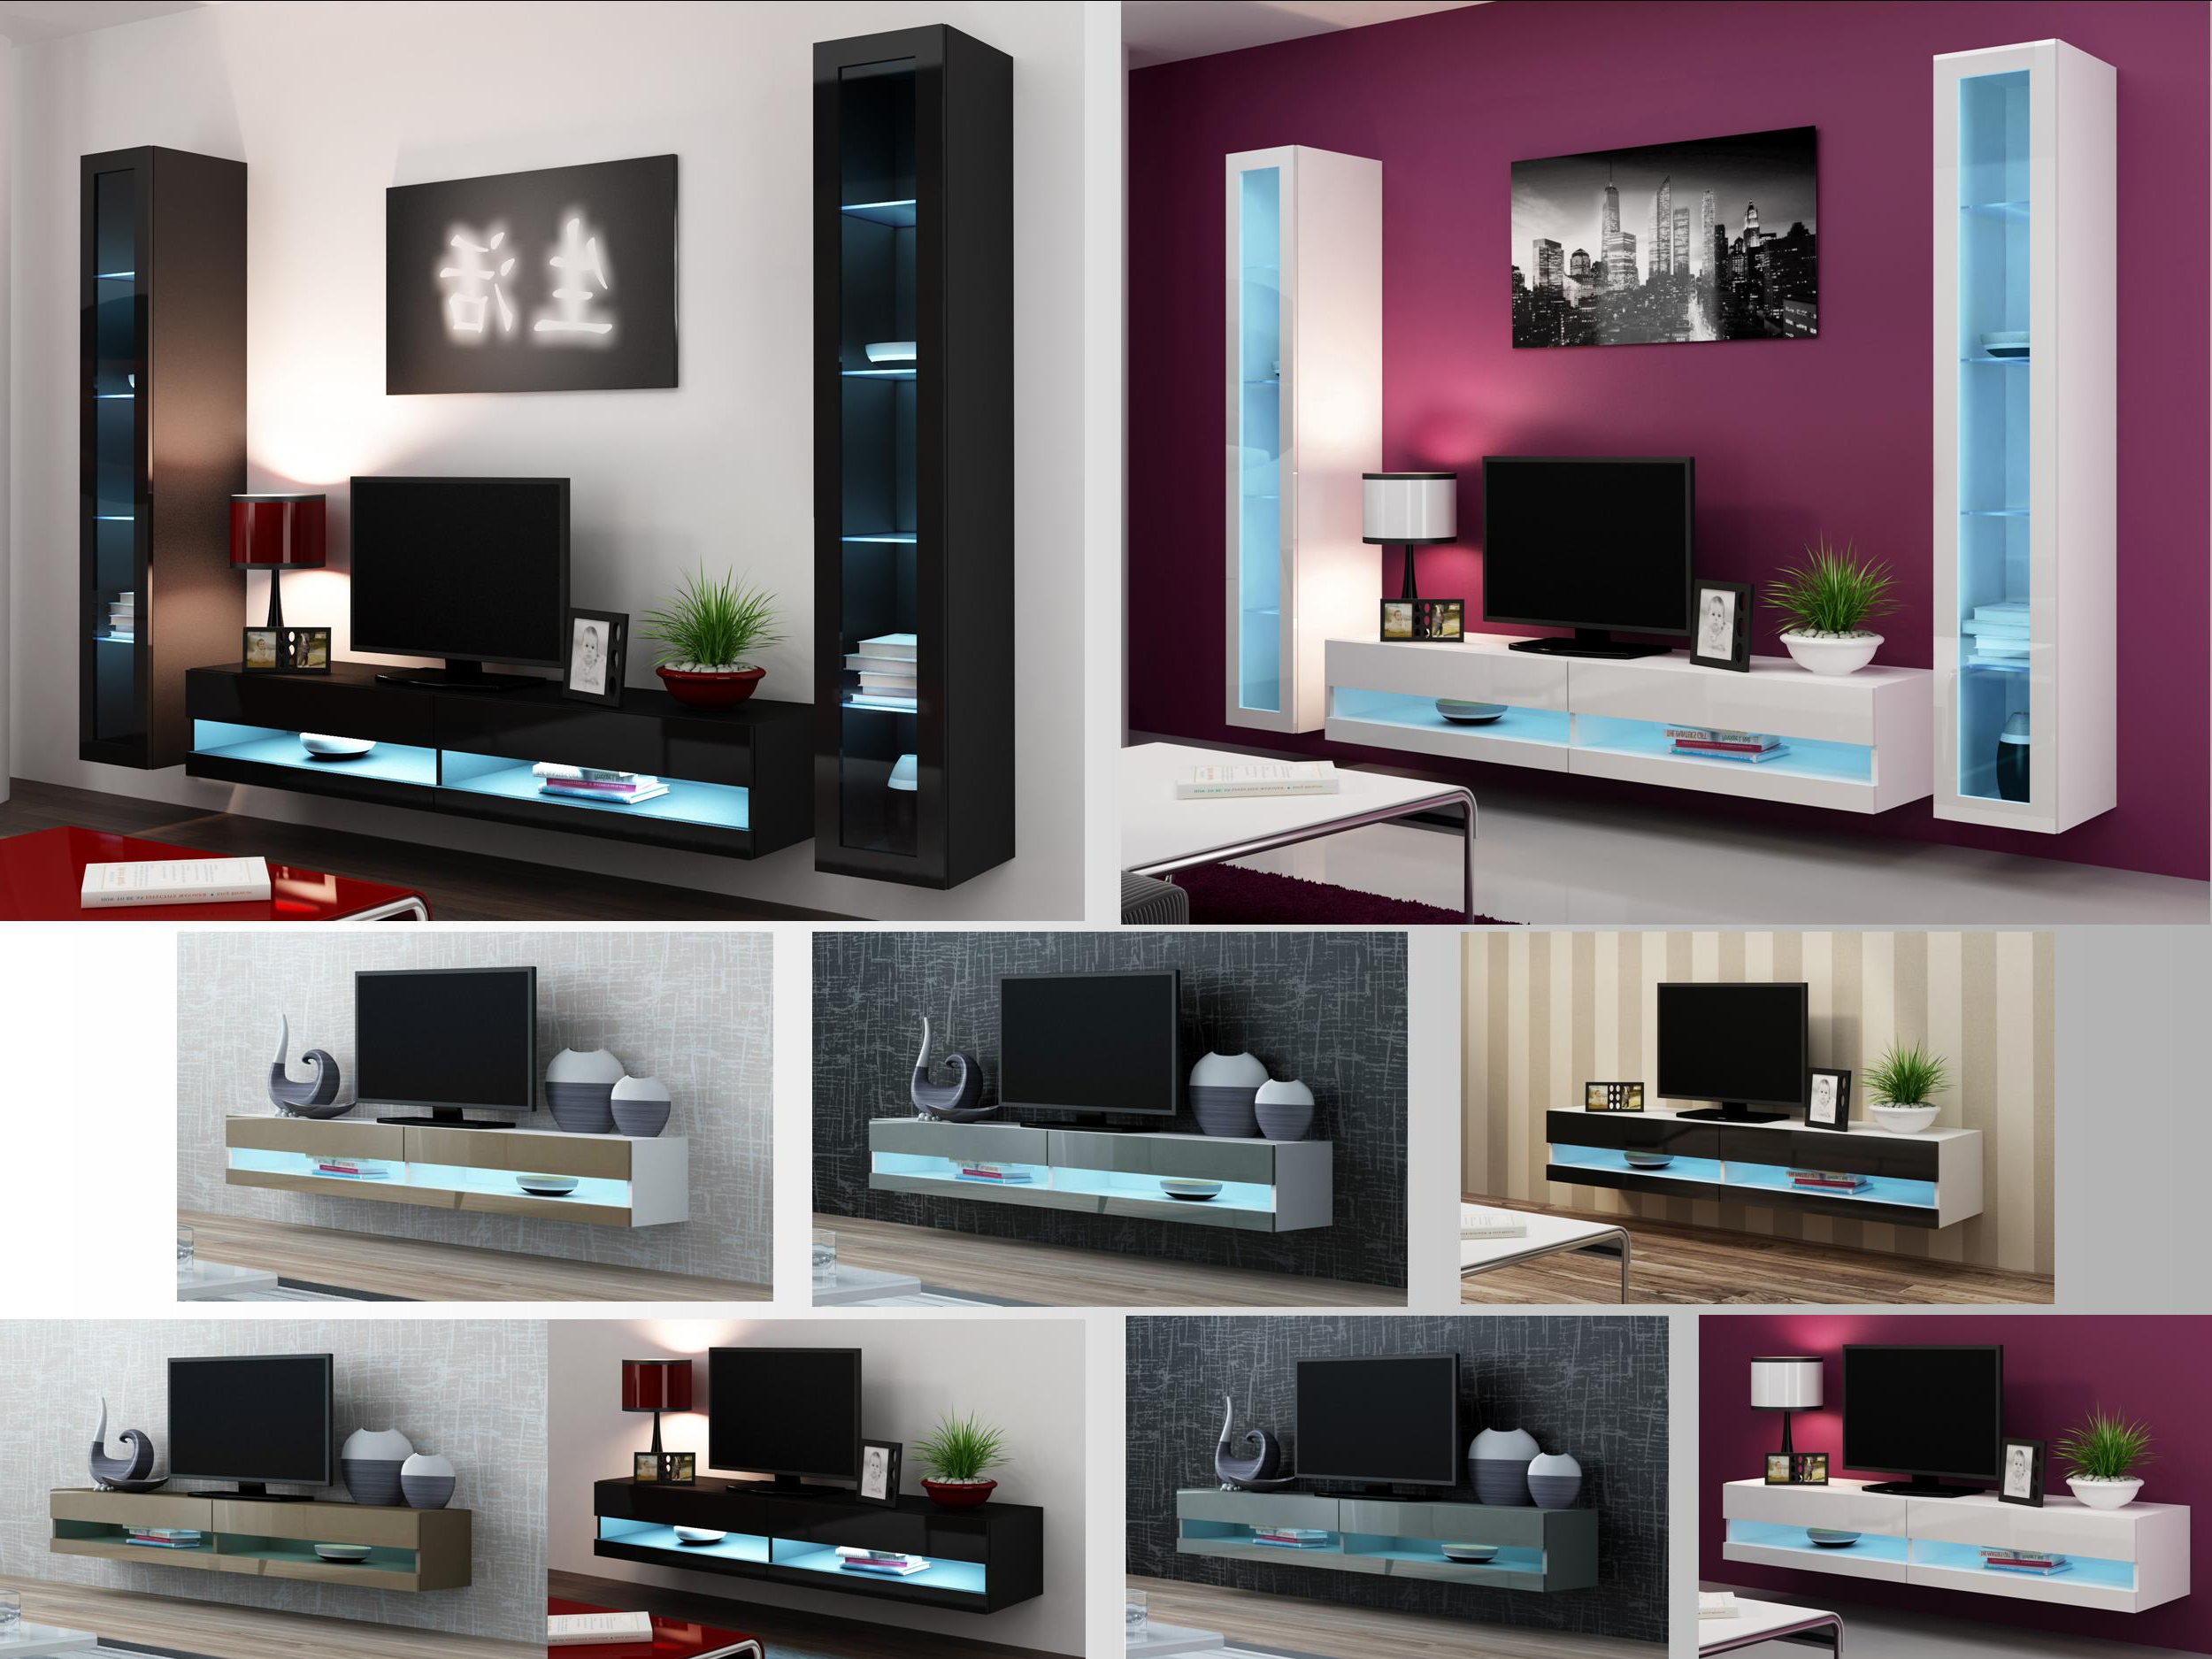 High Gloss Living Room Furniture – Tv Stand, Wall Mounted Cabinet Inside 2018 Black Gloss Tv Wall Unit (View 7 of 20)